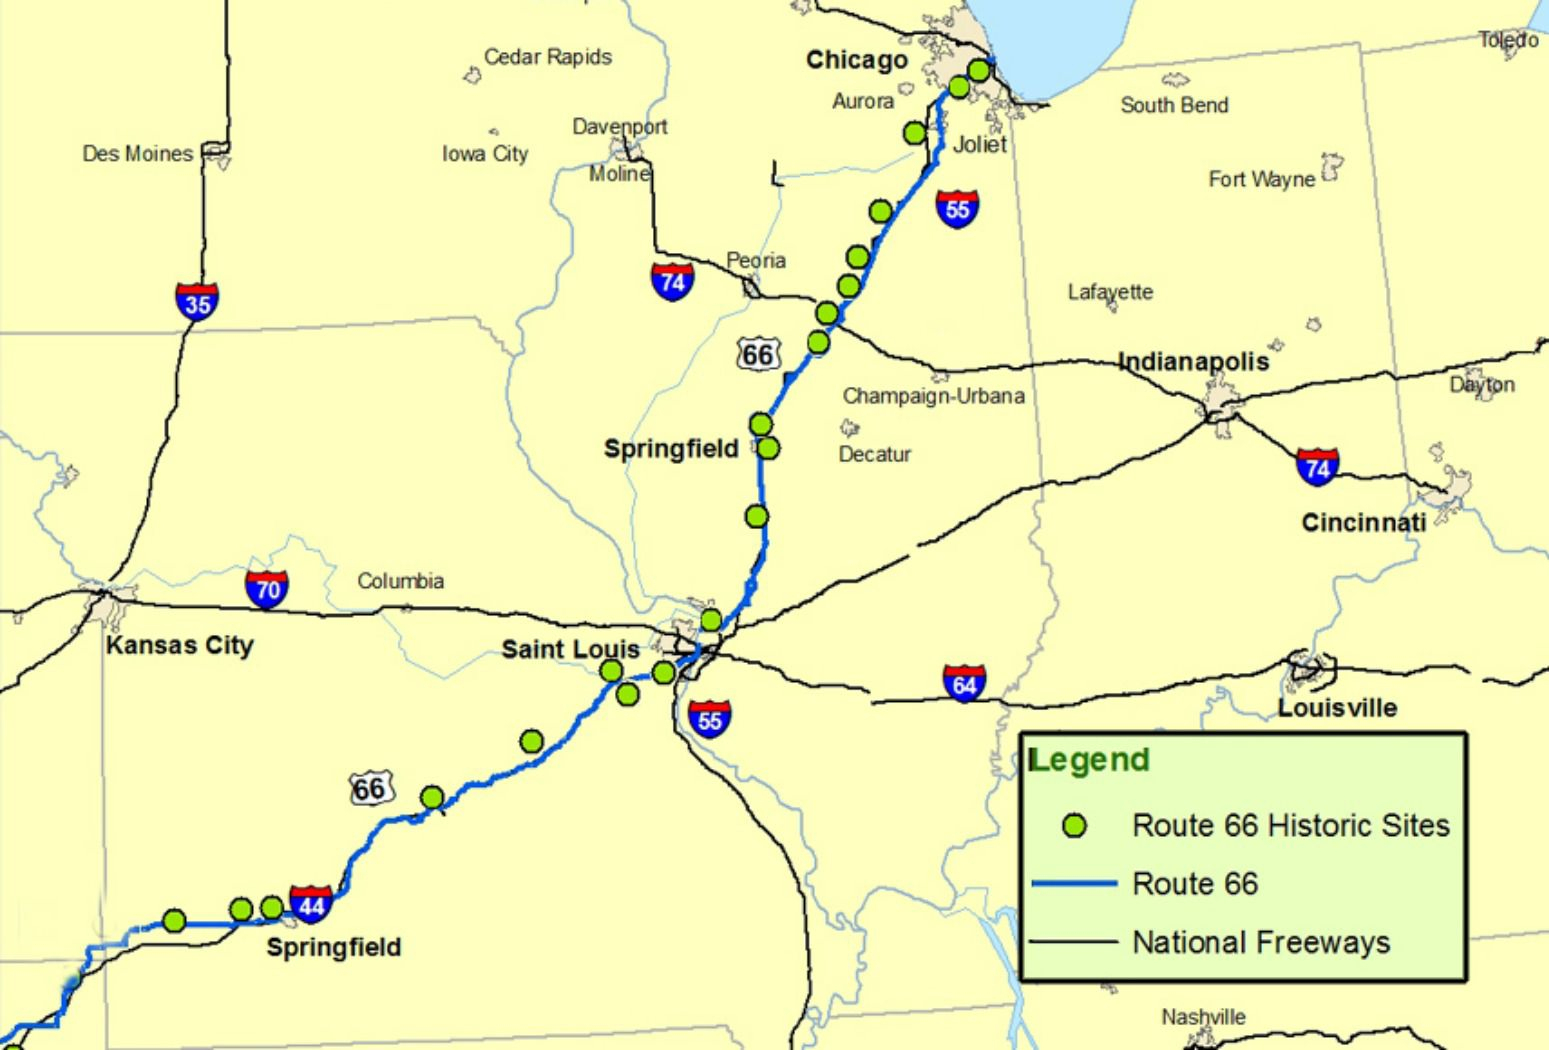 Maps Of Route 66: Plan Your Road Trip - Route 66 Texas Map